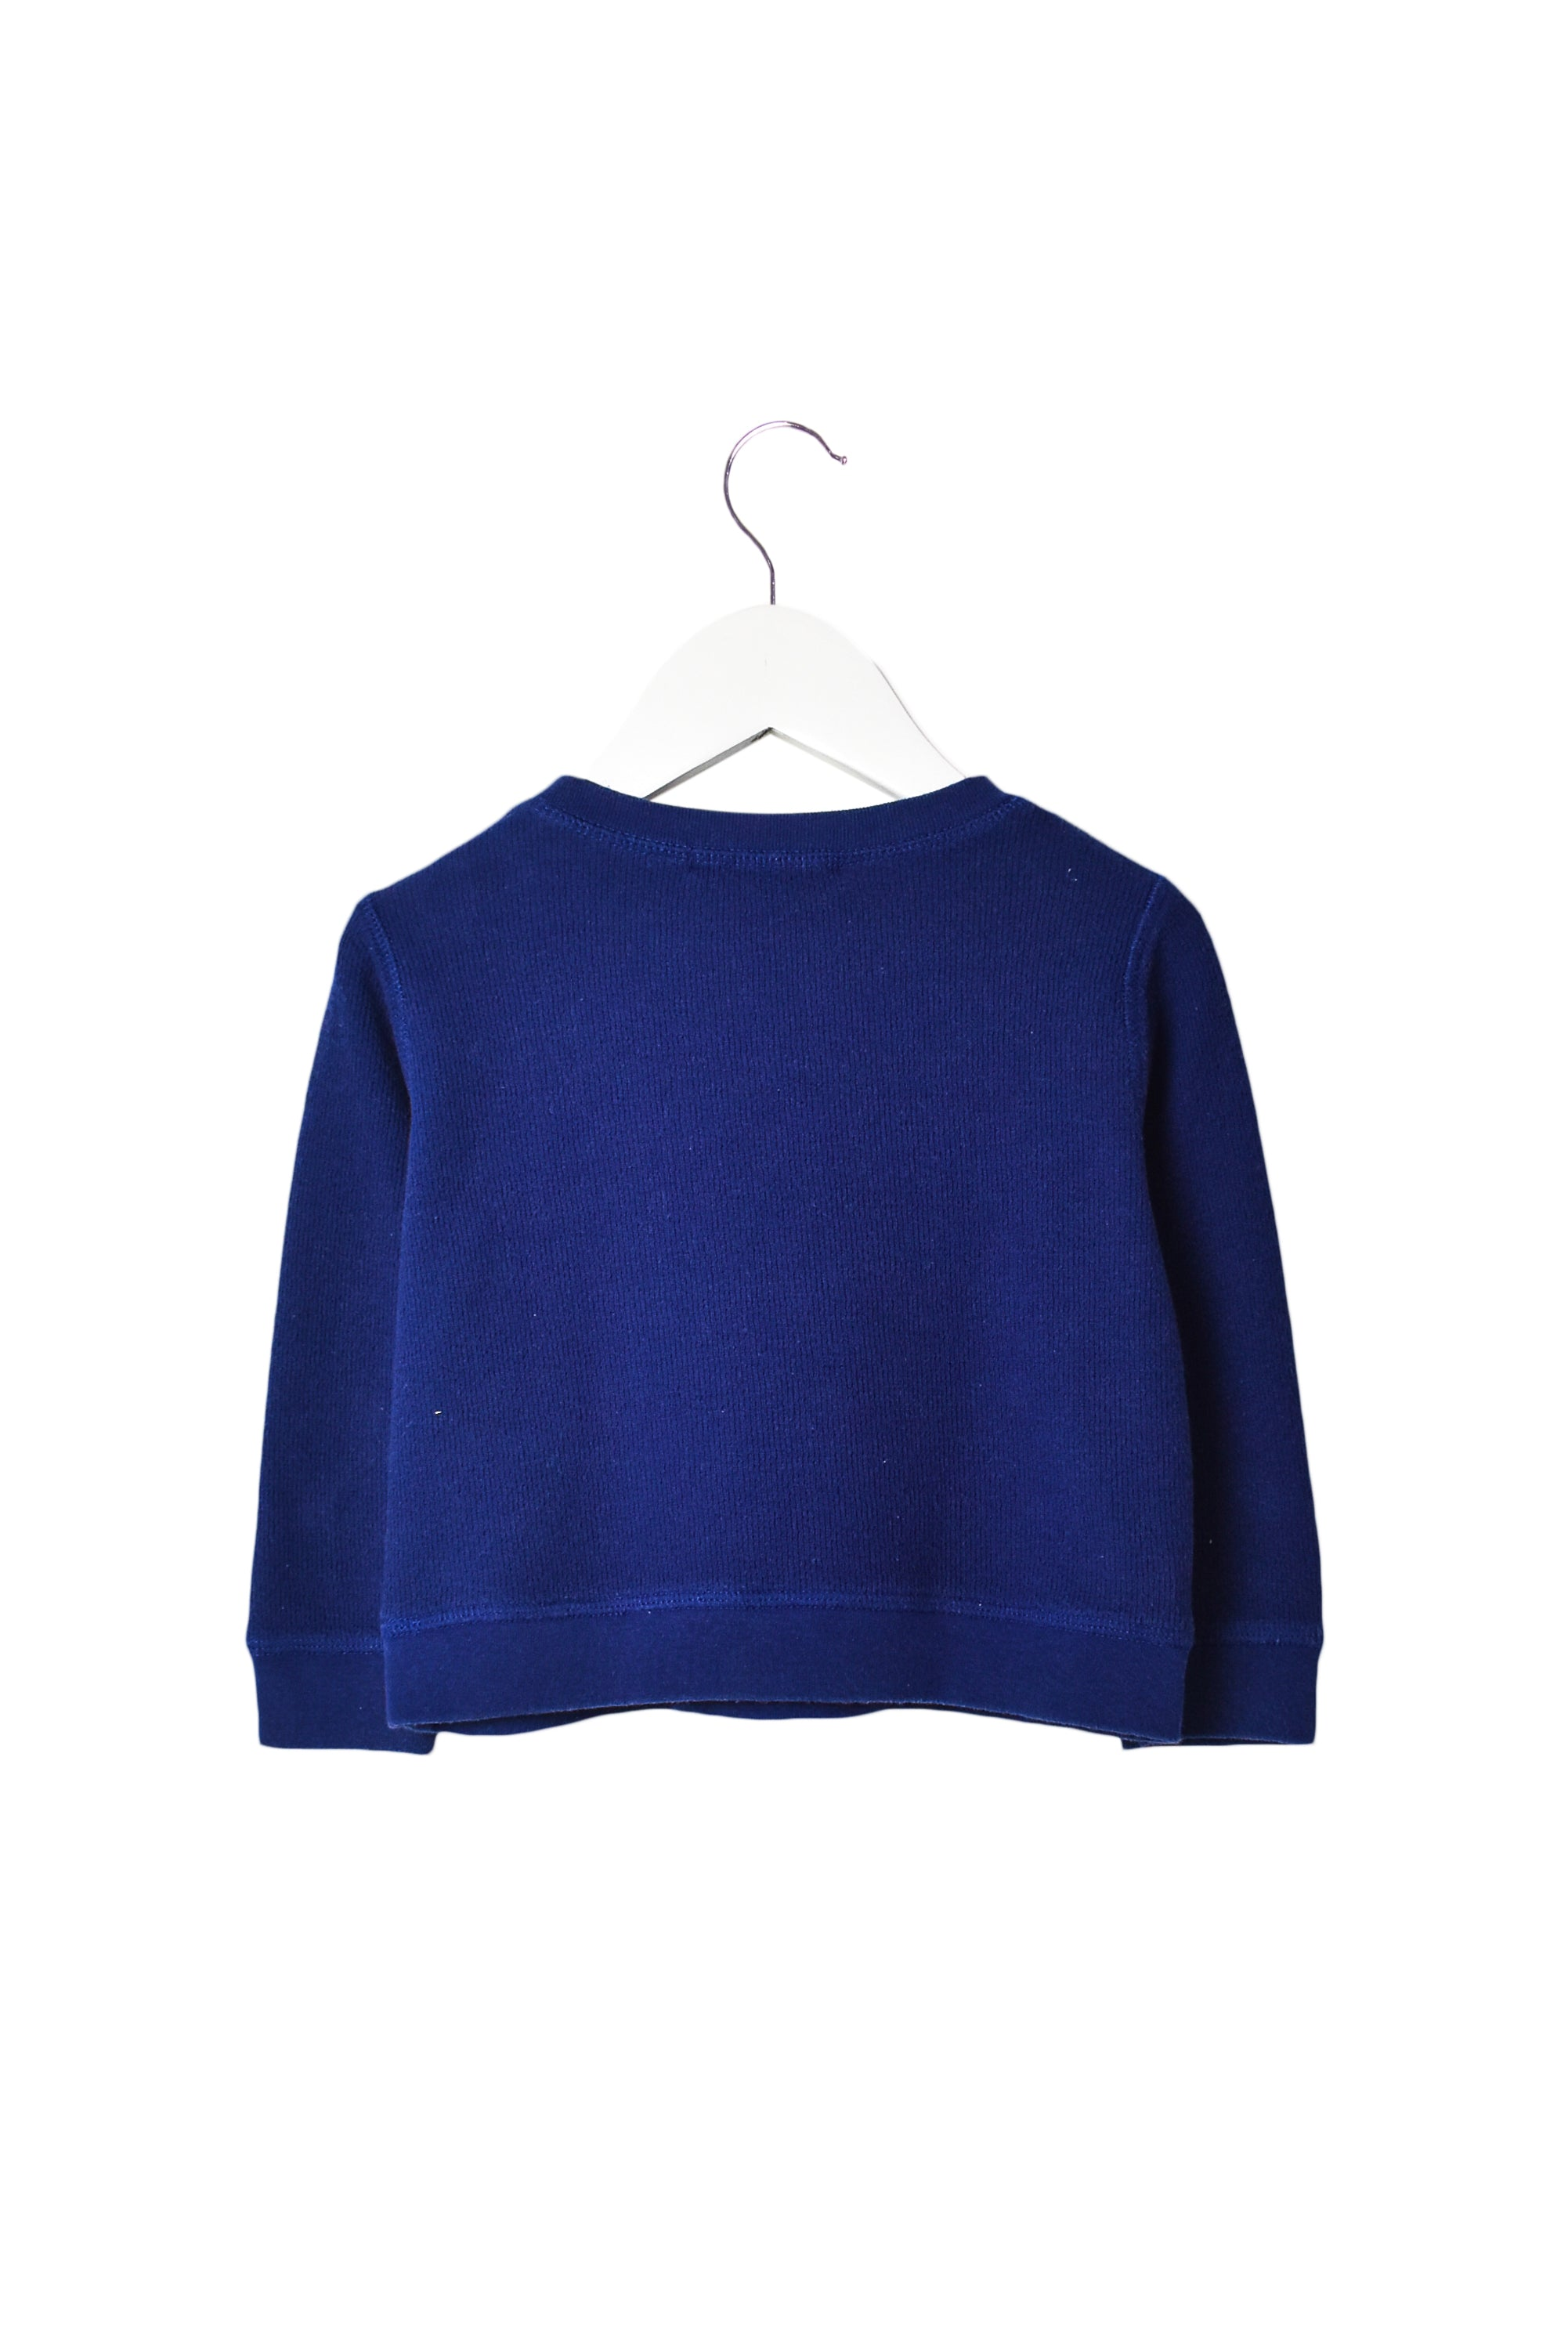 10007381 Bonpoint Kids~ Sweater 2T at Retykle